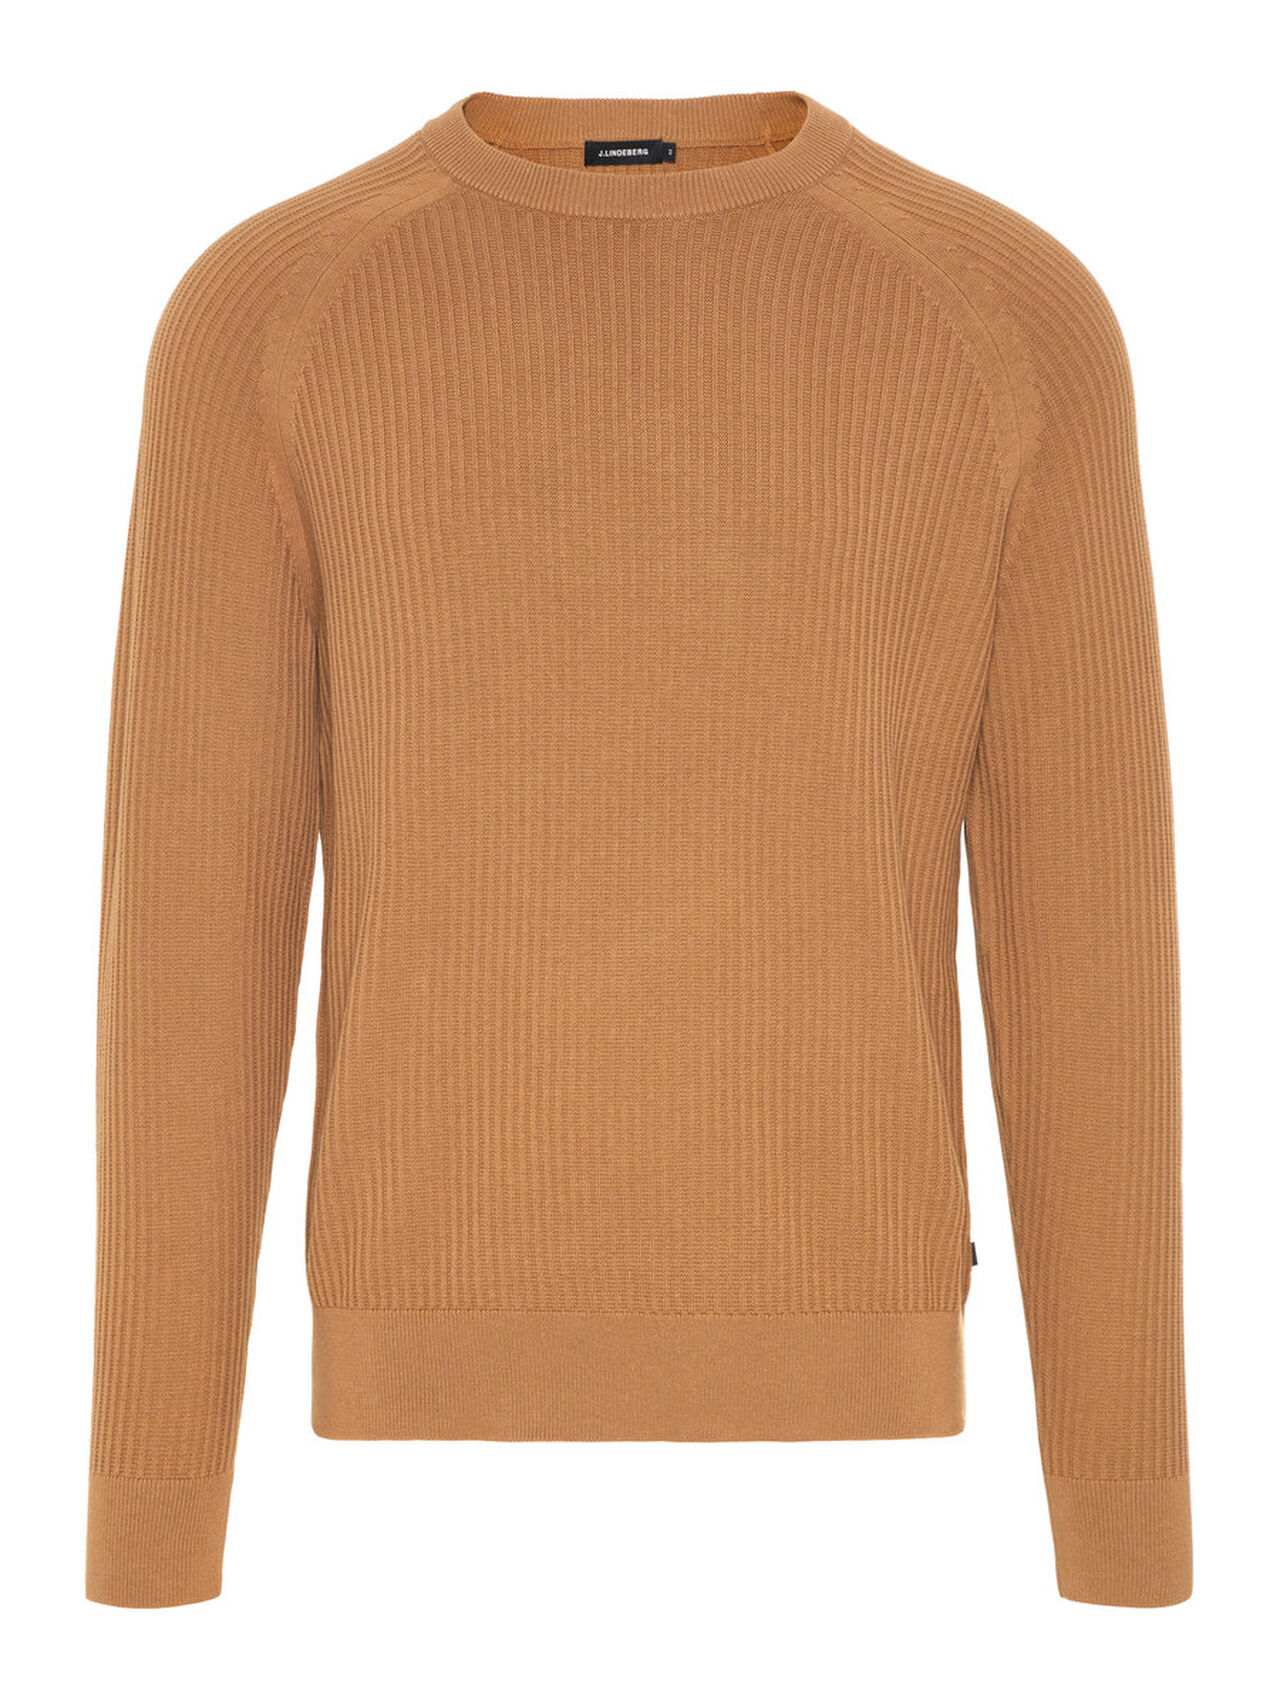 177975850811 Randers small structure sweater